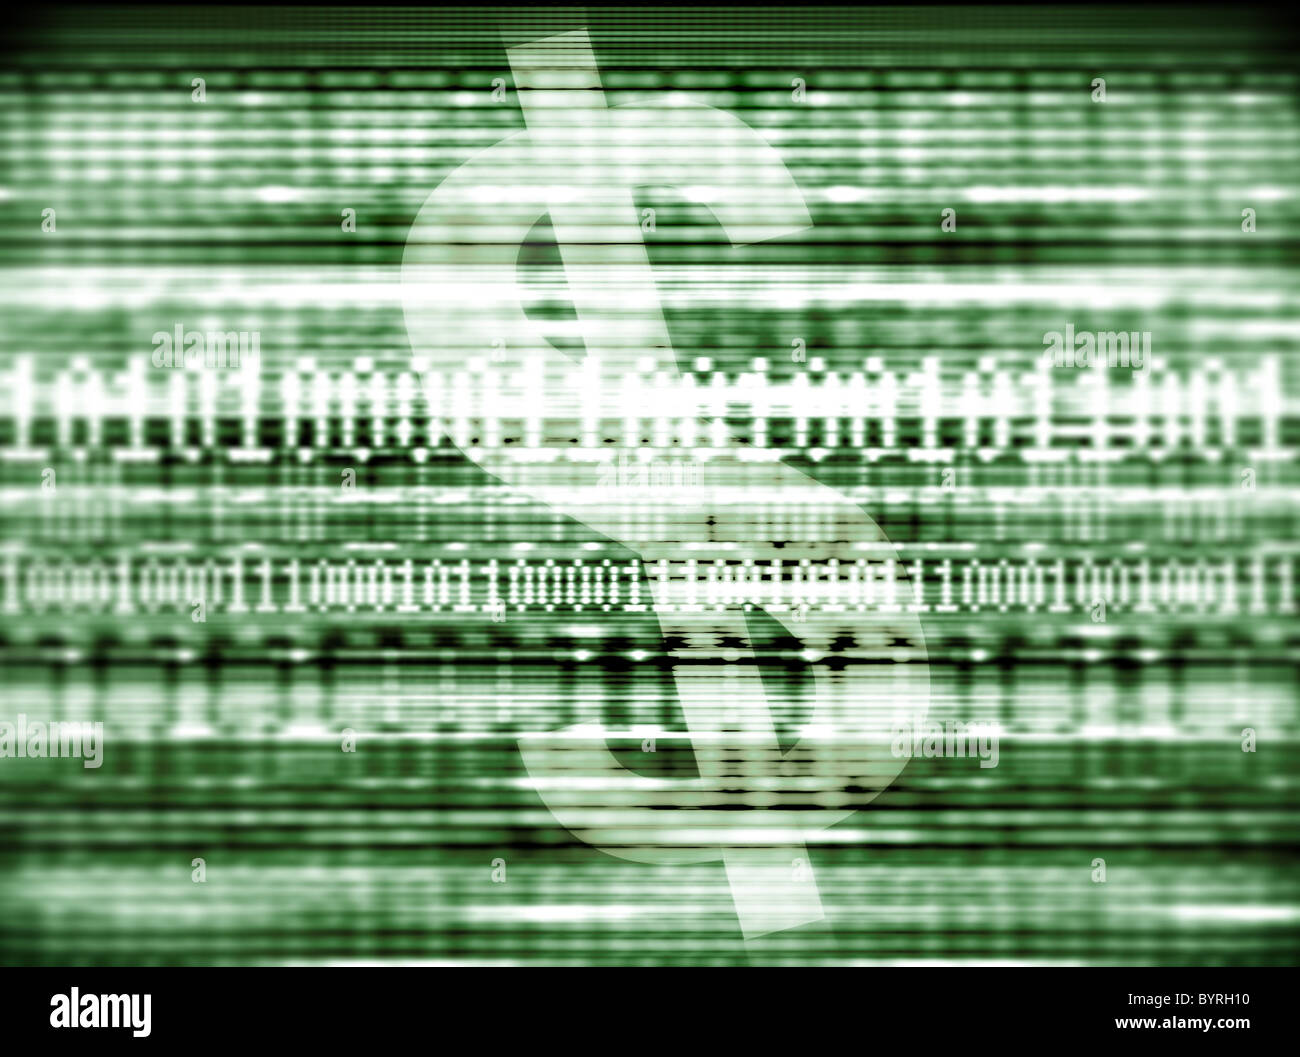 A dollar symbol and binary code or data streams representing online